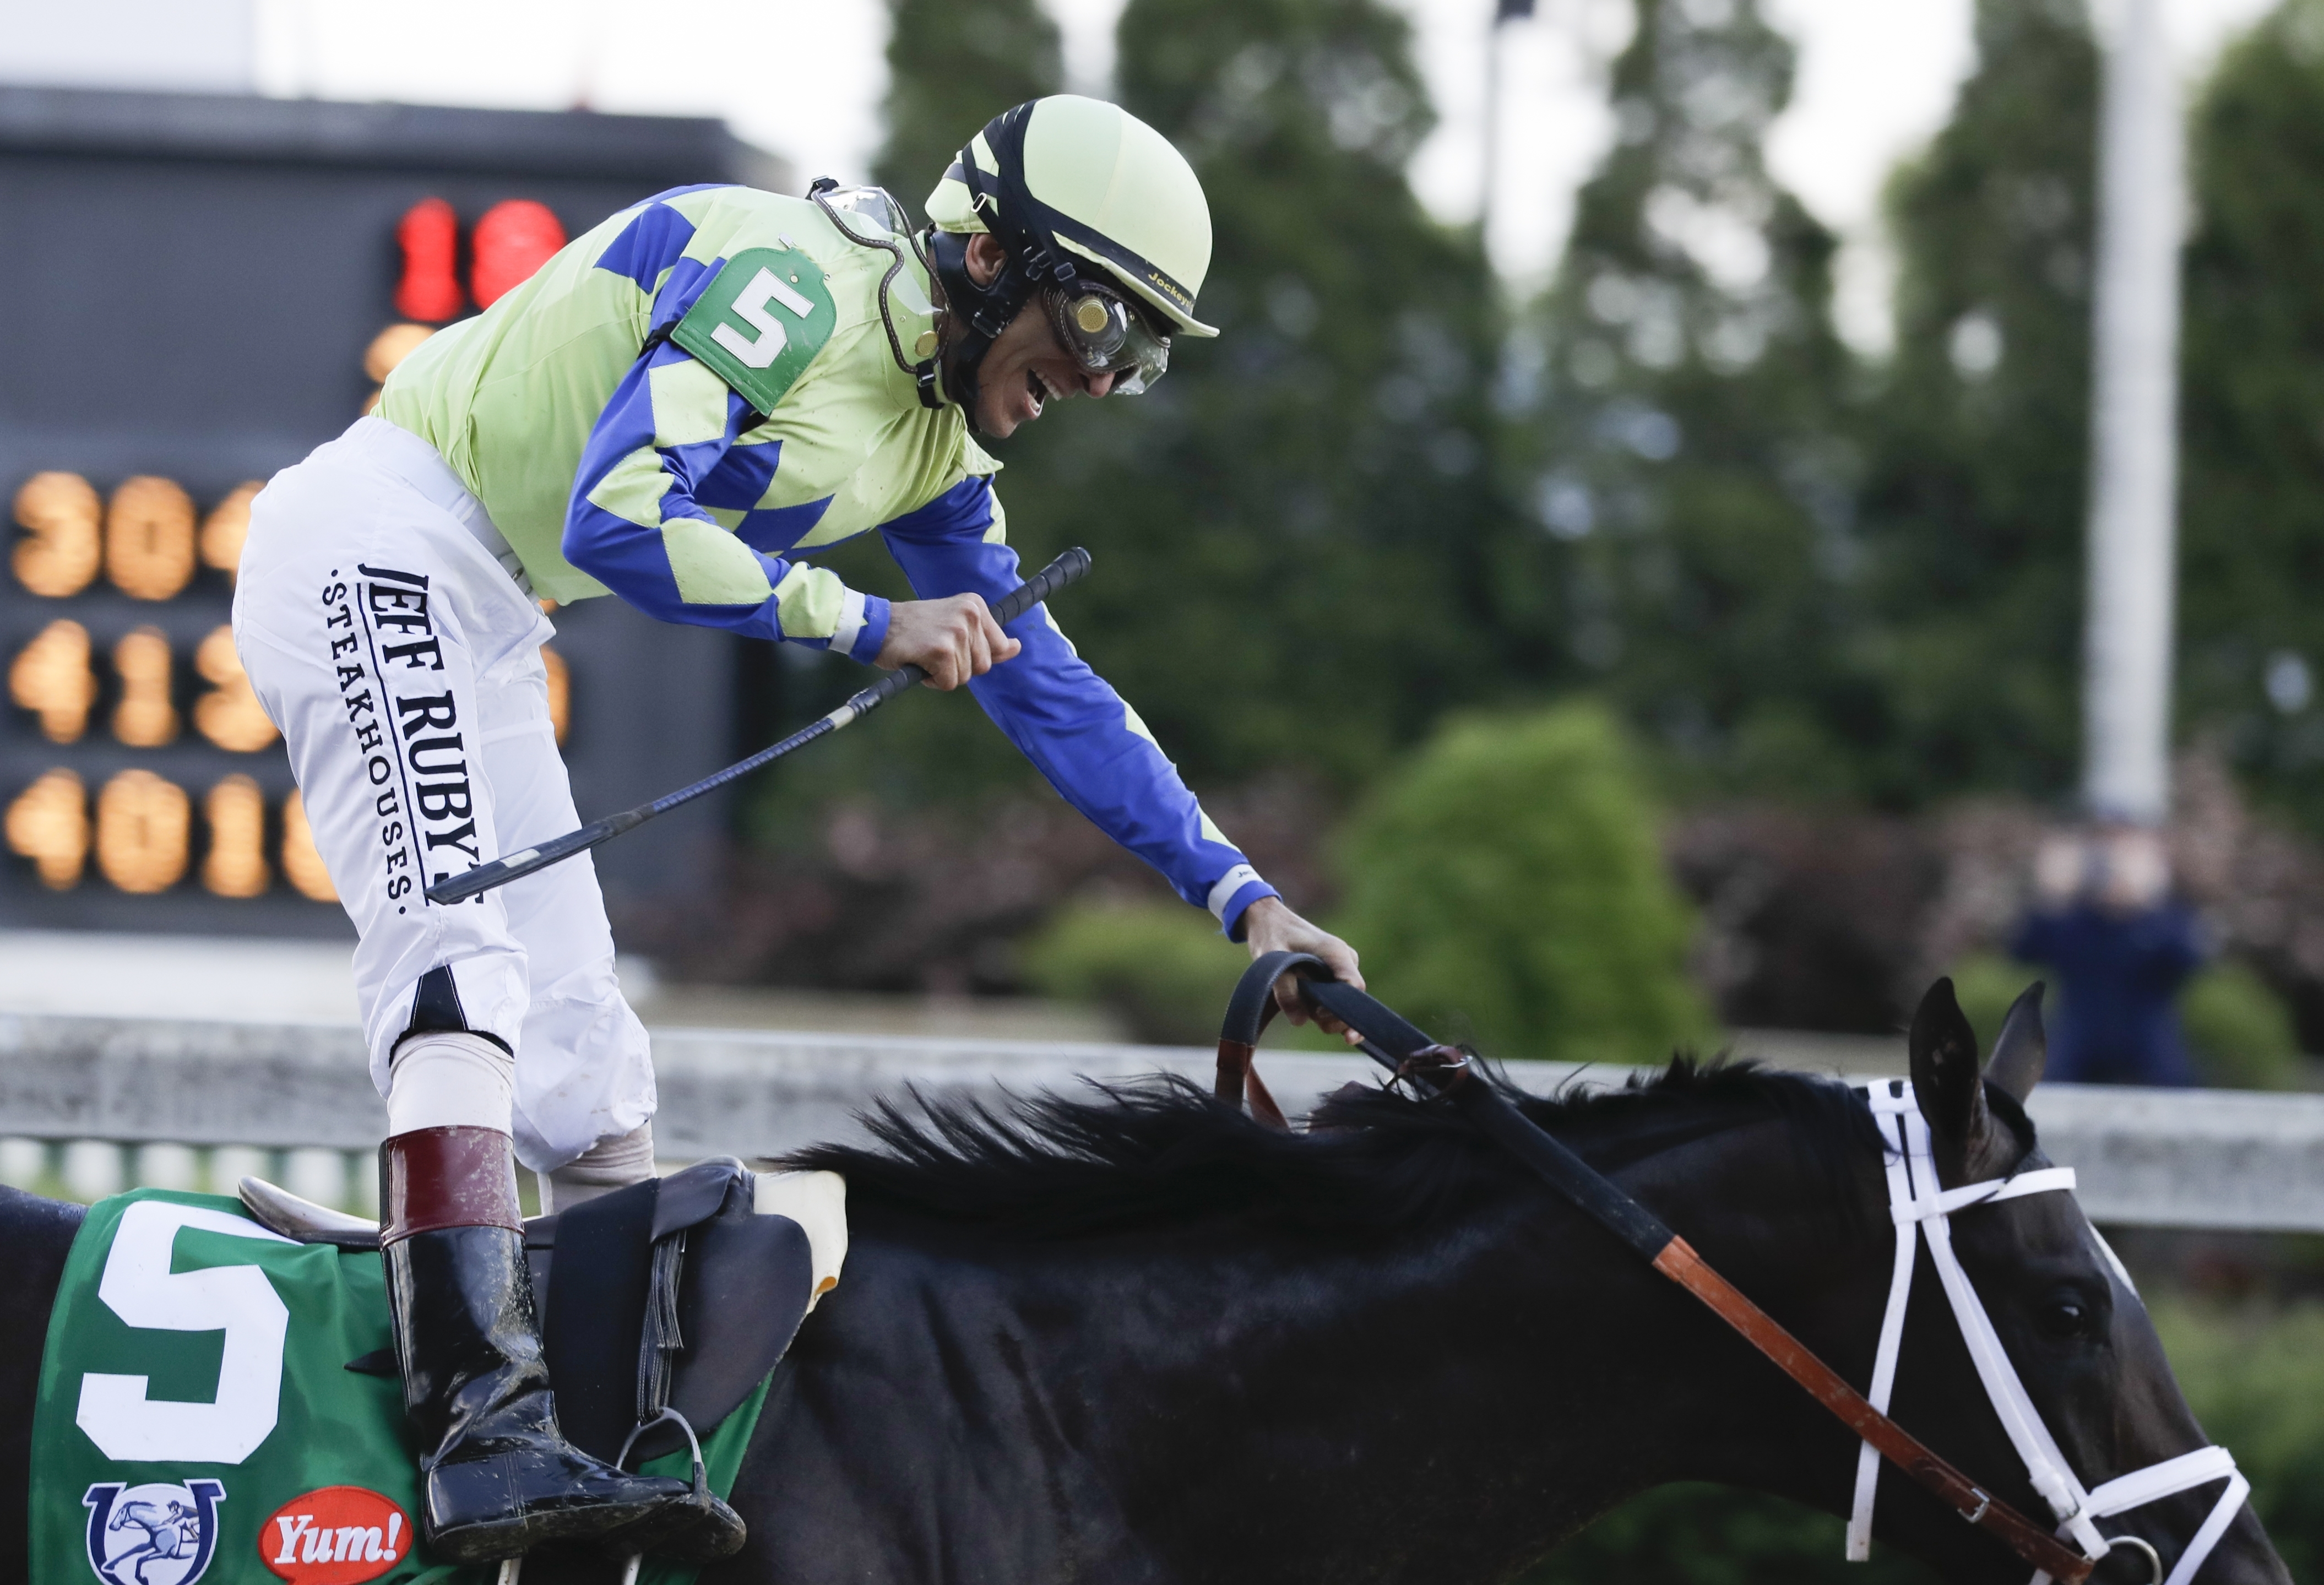 John Velazquez rides Always Dreaming to victory in the 143rd running of the Kentucky Derby horse race at Churchill Downs Saturday, May 6, 2017, in Louisville, Ky. (AP Photo/Garry Jones)